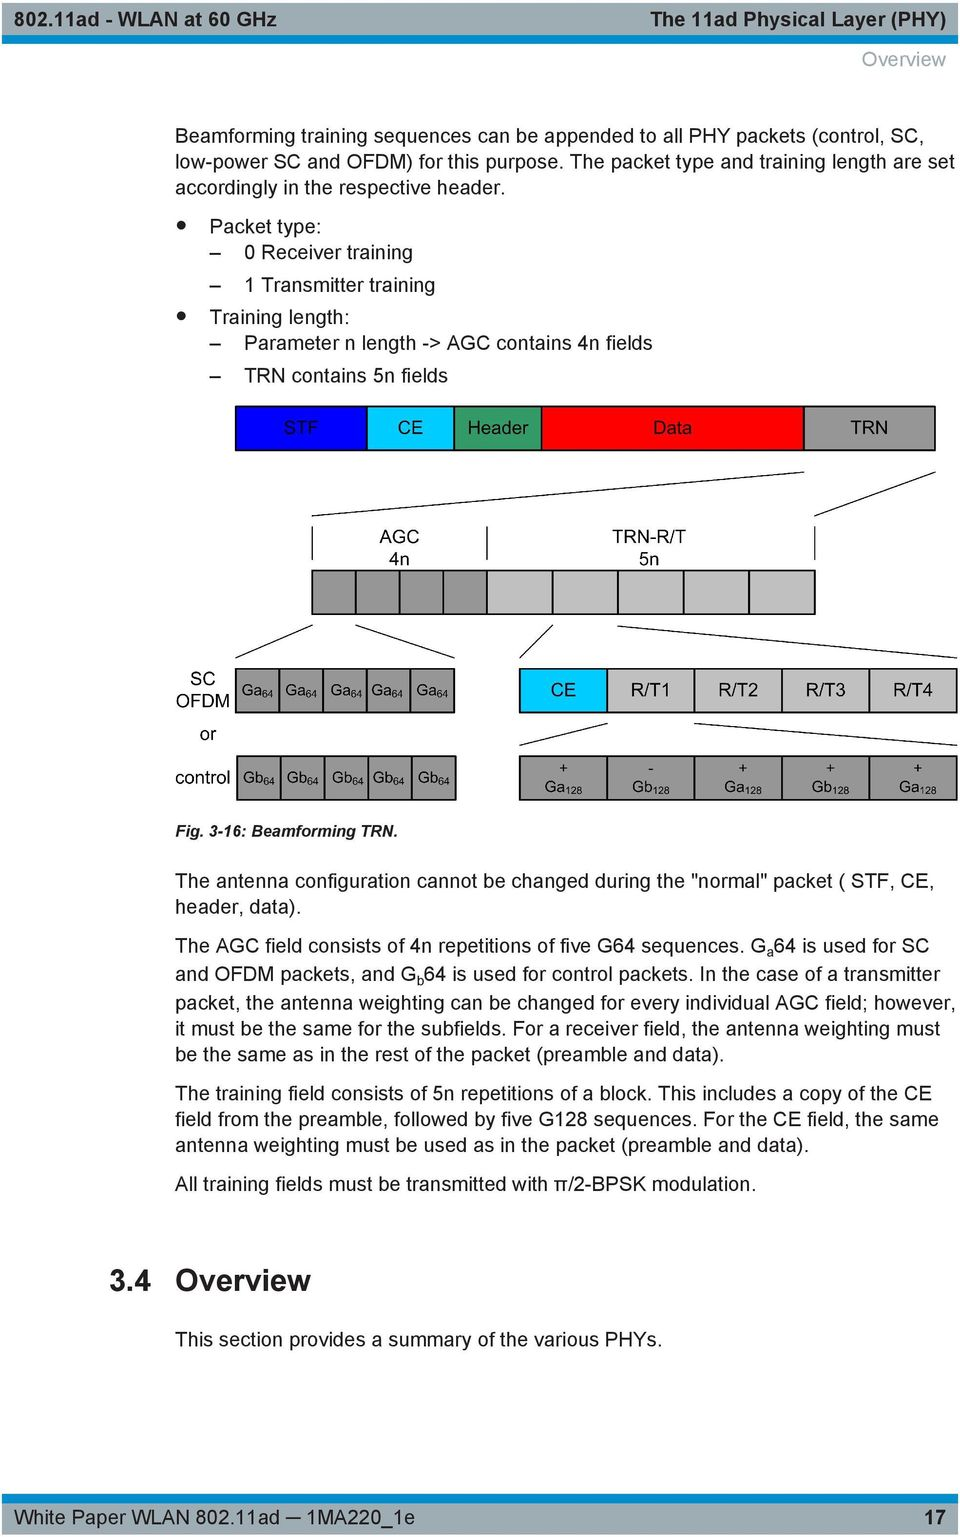 Packet type: 0 Receiver training 1 Transmitter training Training length: Parameter n length -> AGC contains 4n fields TRN contains 5n fields Fig. 3-16: Beamforming TRN.